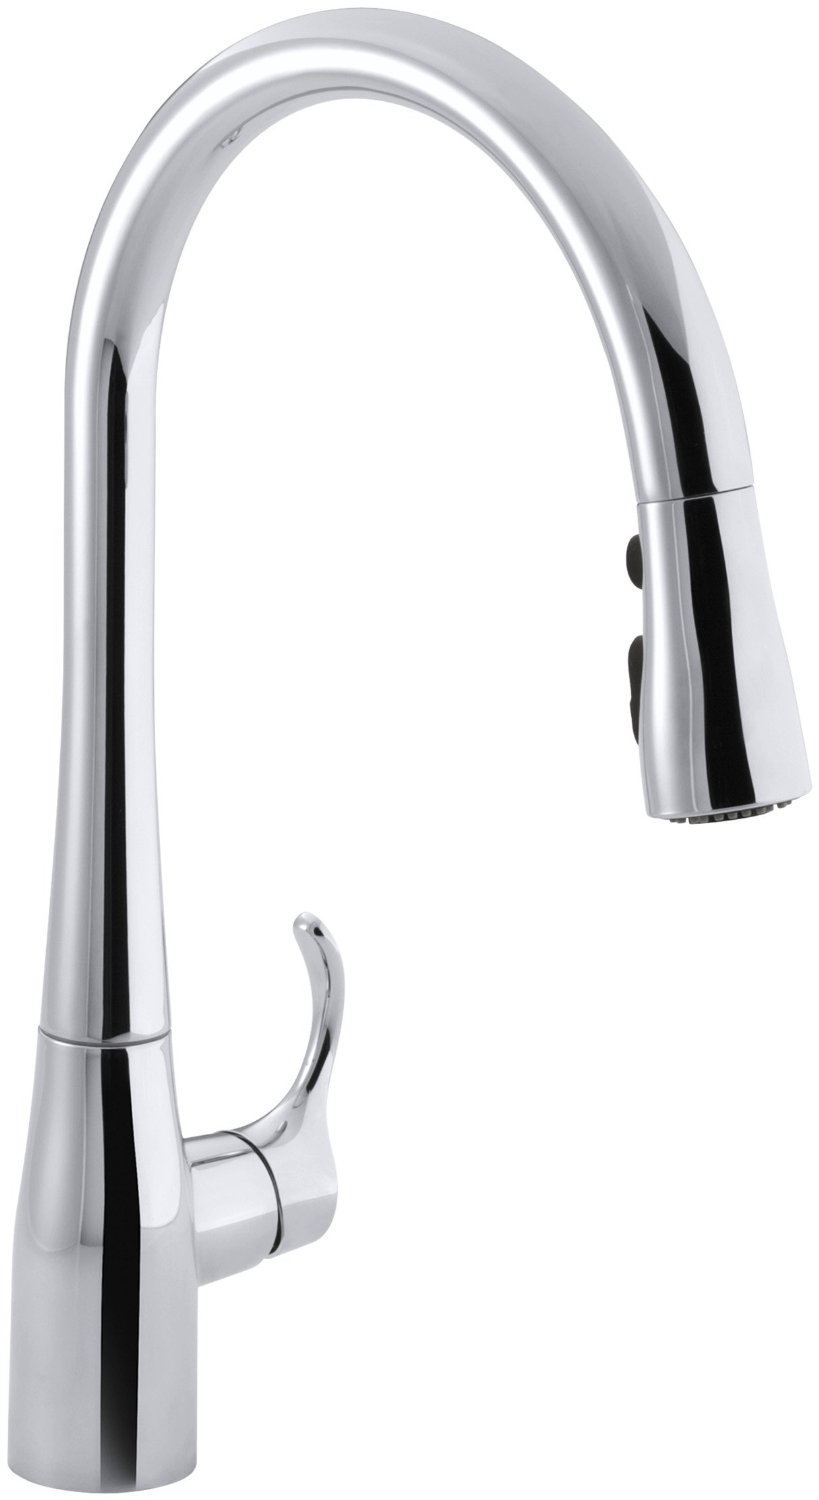 Whats the Best Pull Down Kitchen Faucet